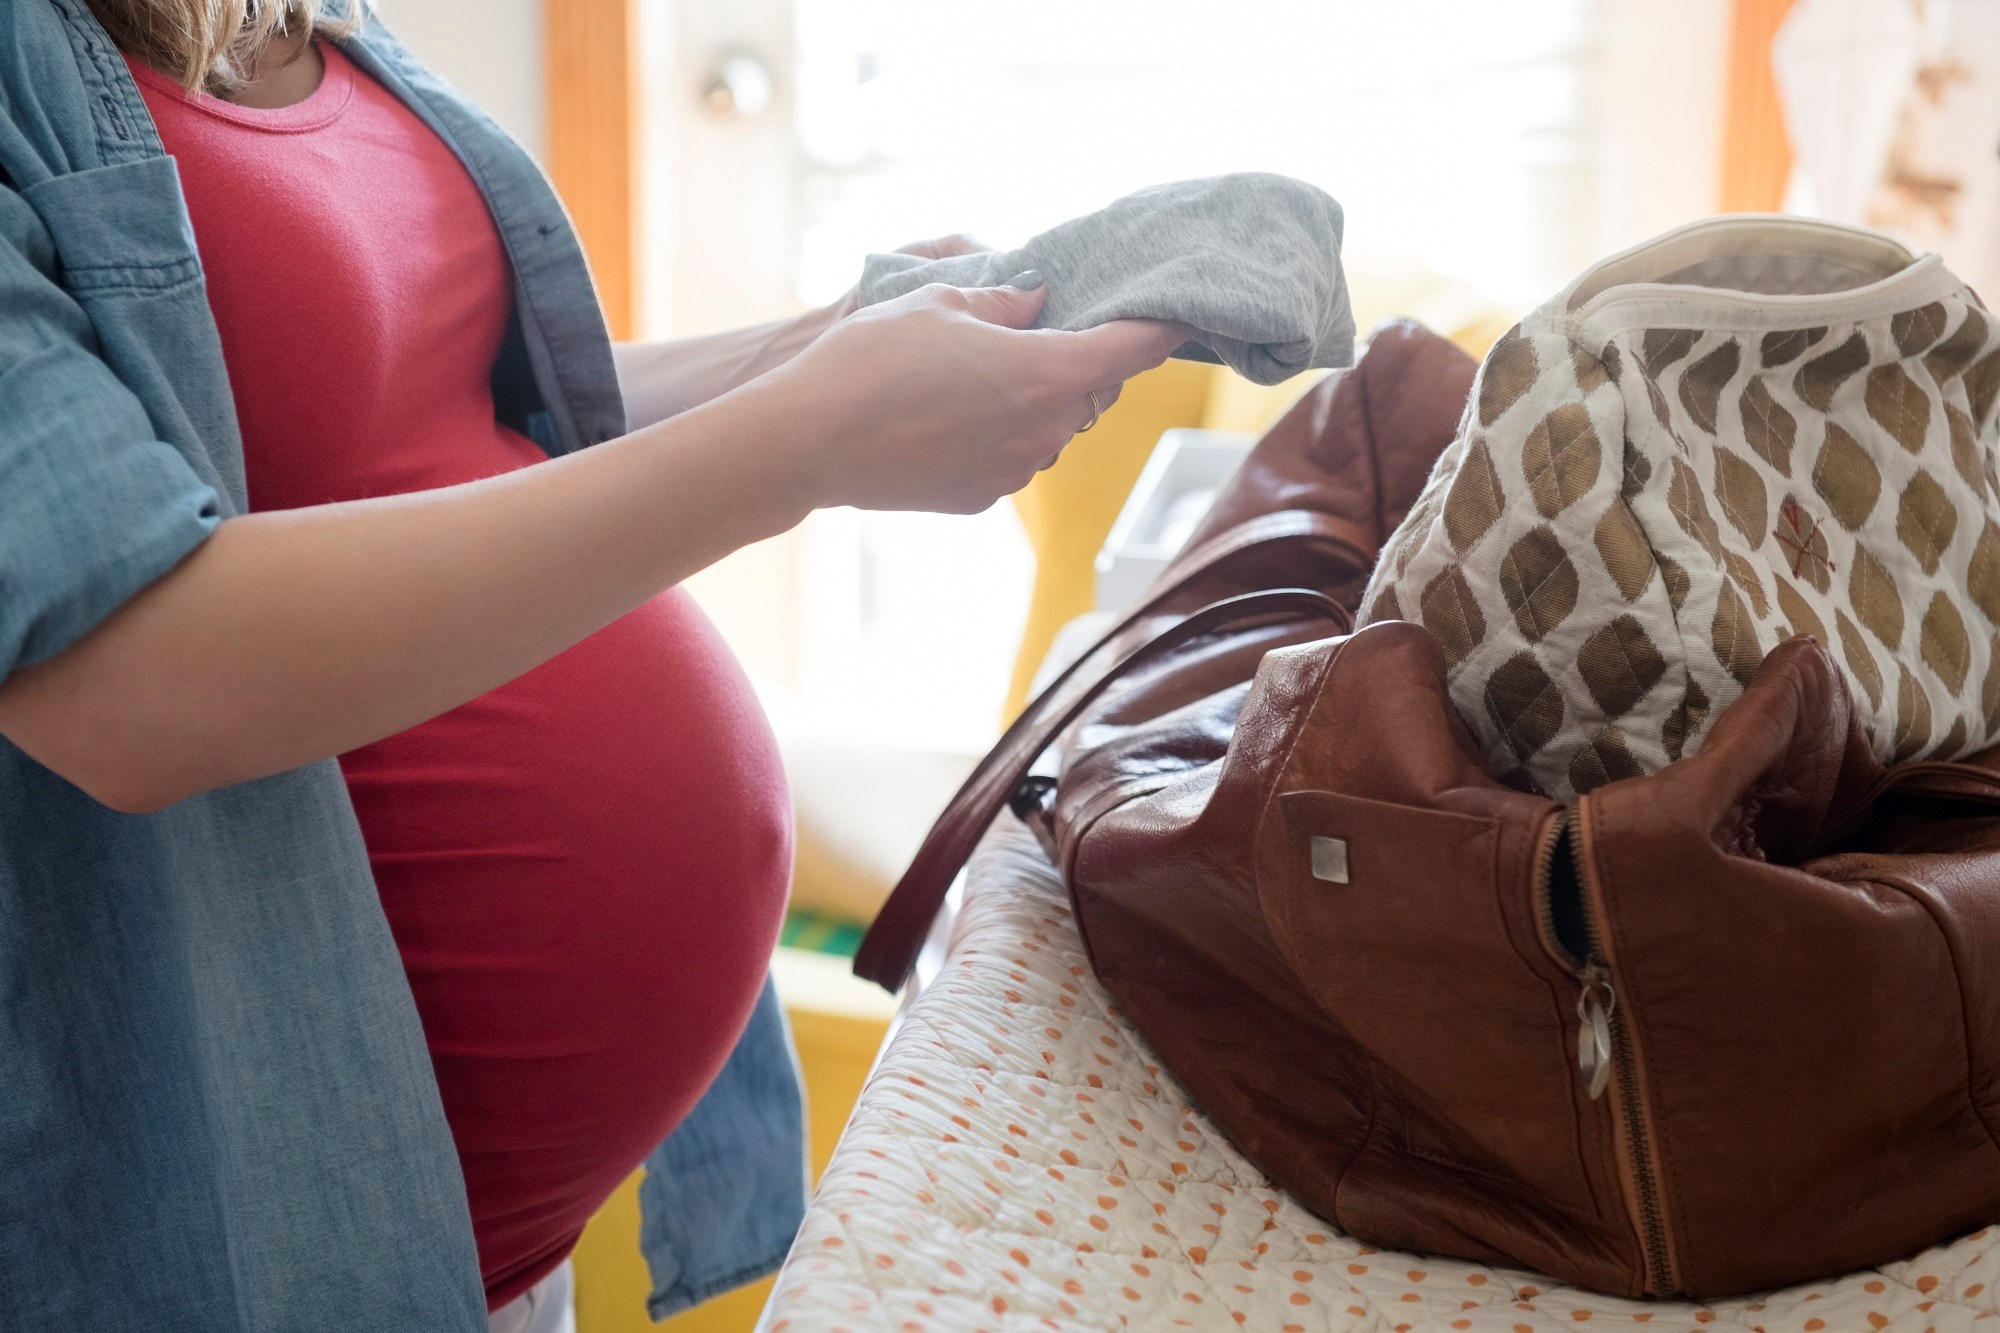 Younger Gestational Age Associated With Symptoms of ADHD in Children